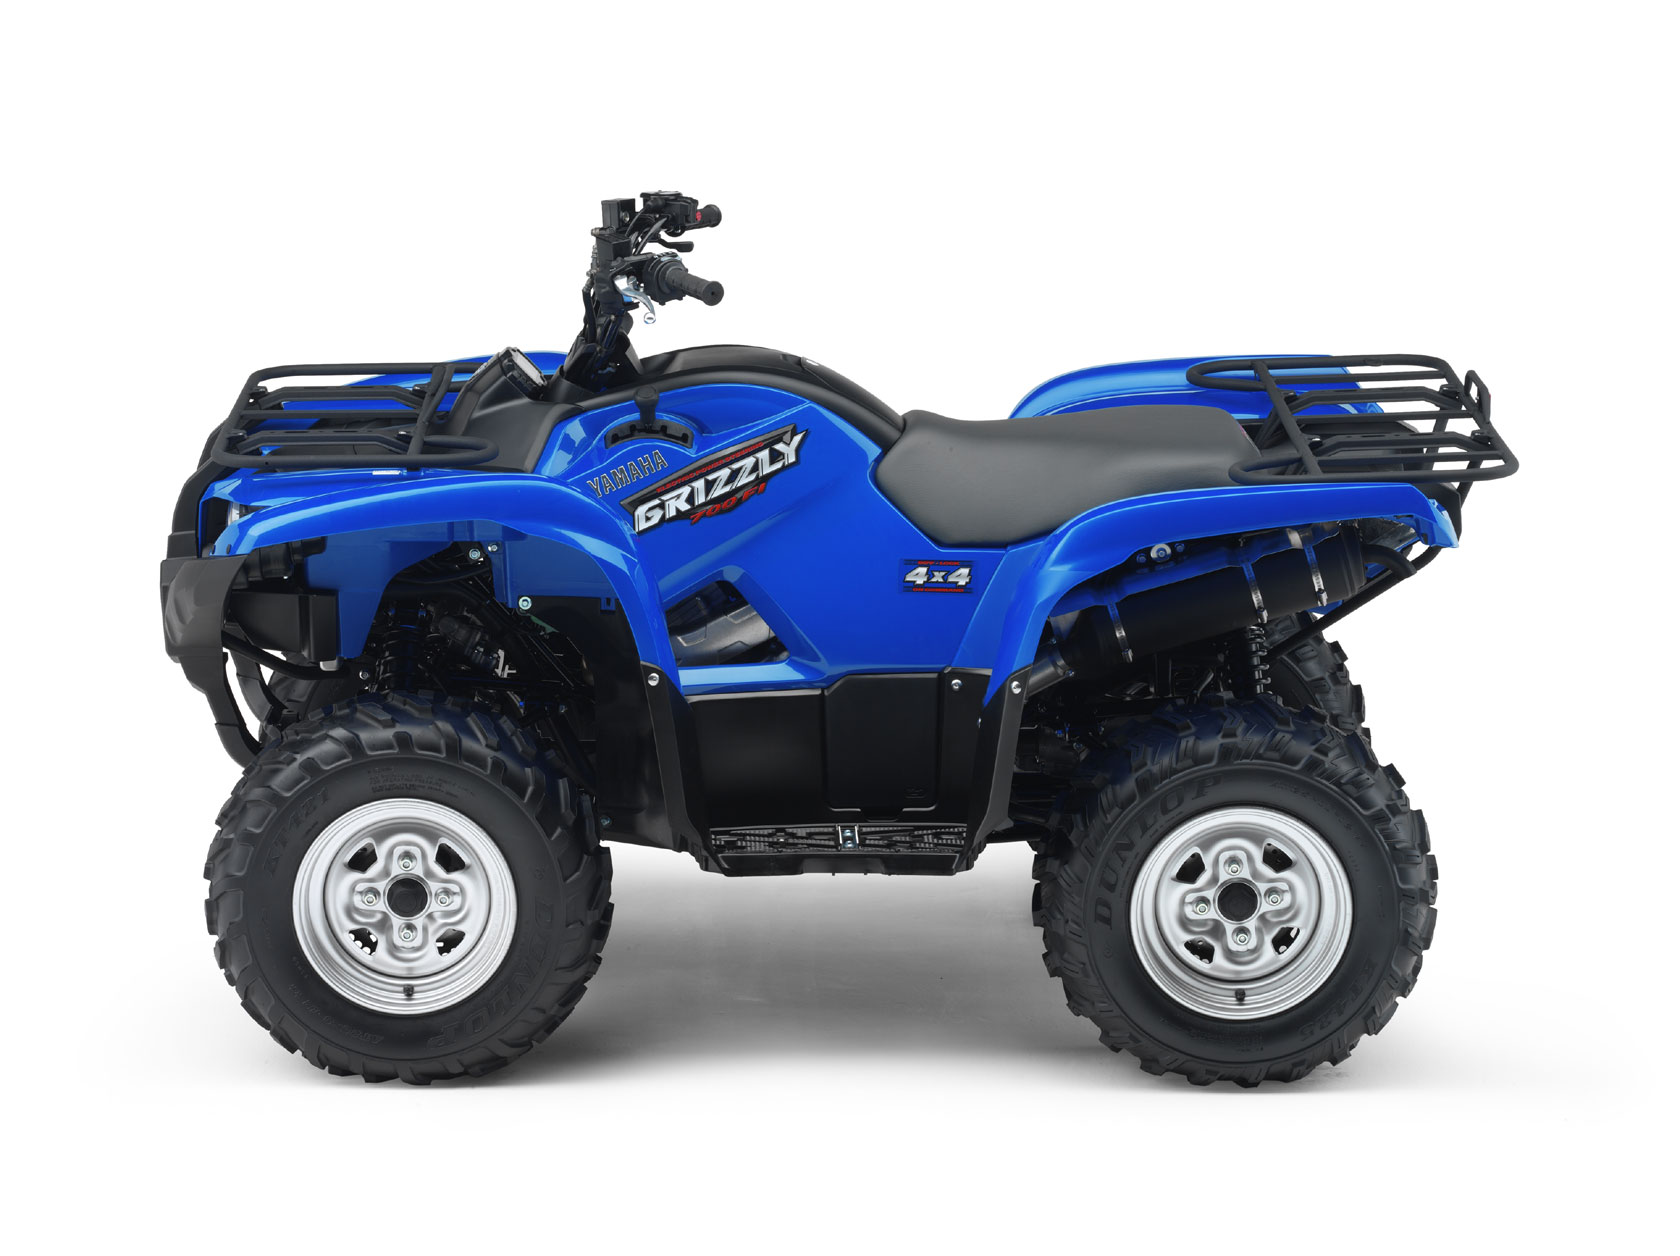 Yamaha grizzly 700 fi specs 2008 2009 autoevolution for Yamaha grizzly atv